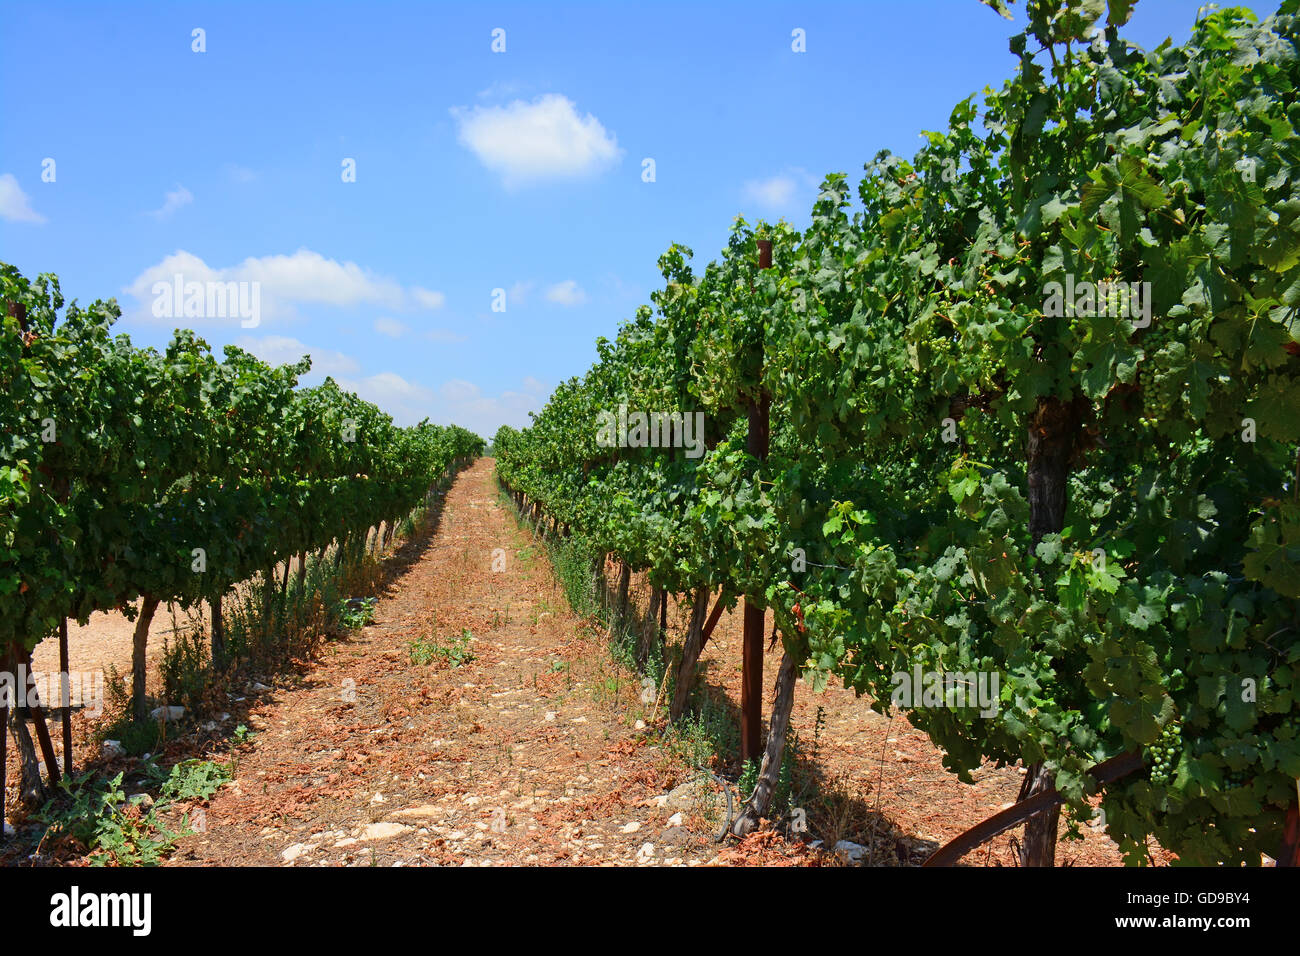 Rows of vines in a Vineyard - Stock Image